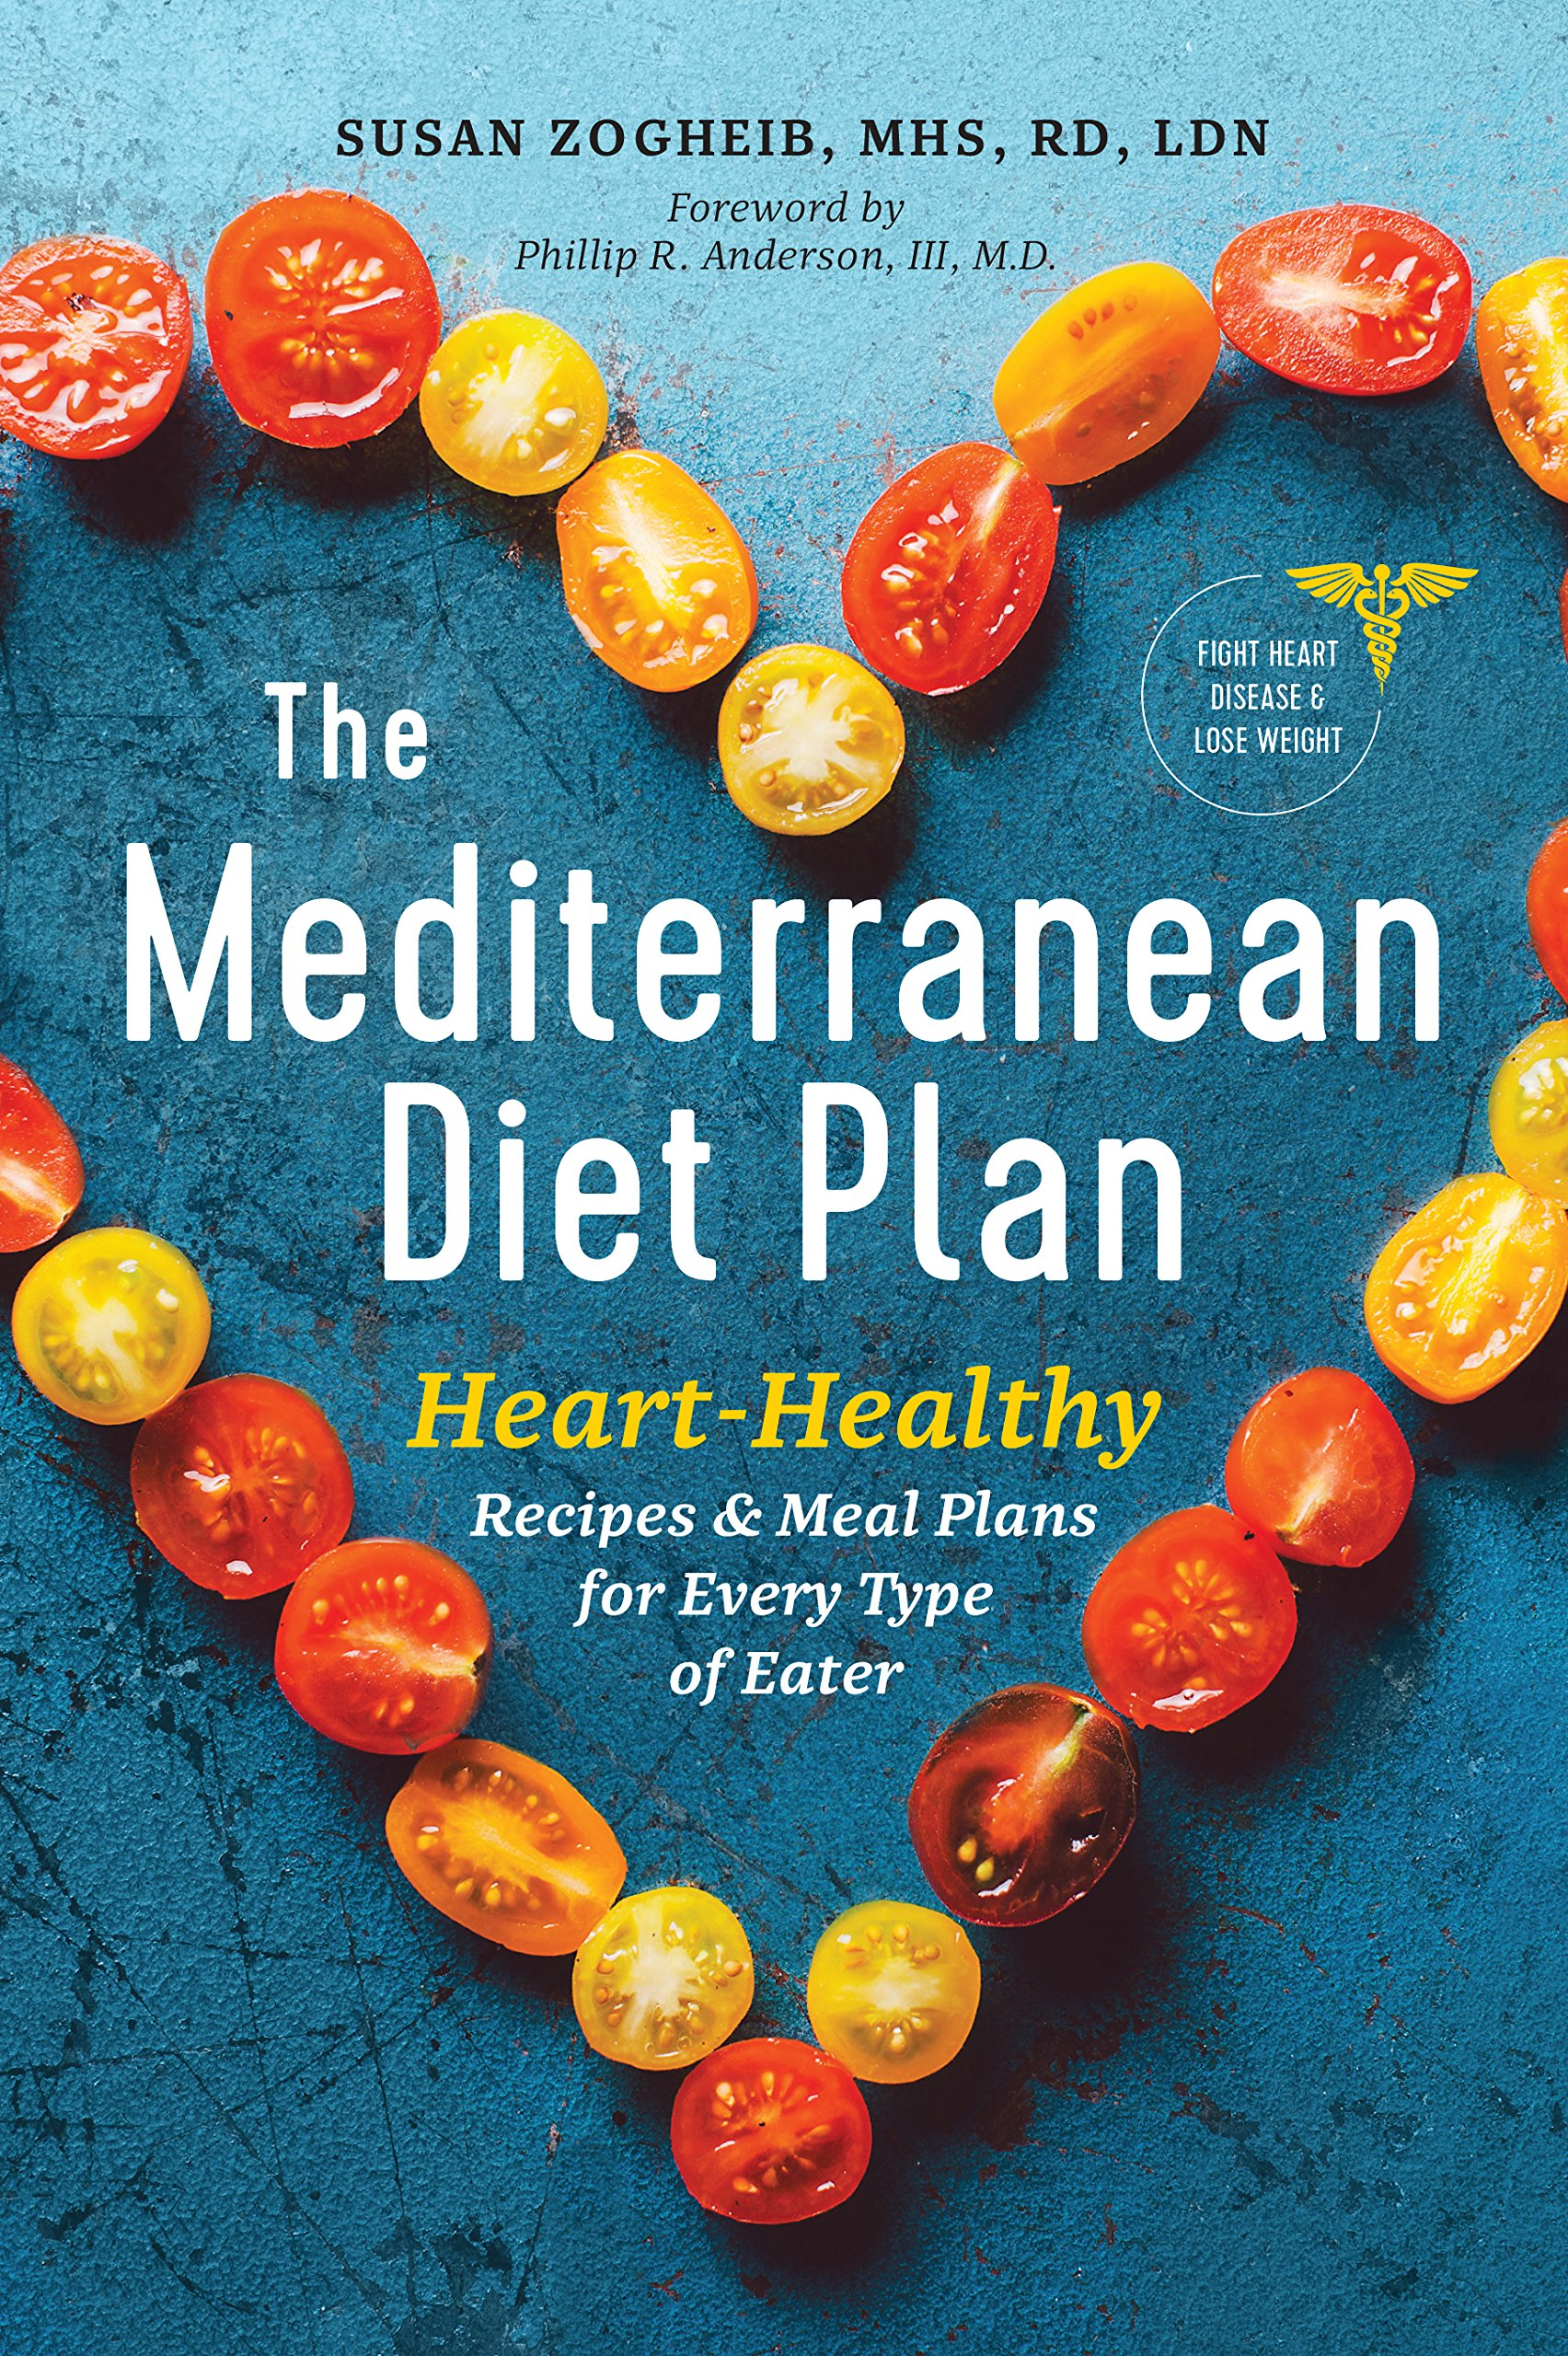 The Mediterranean Diet Plan: Heart-Healthy Recipes & Meal Plans for ...